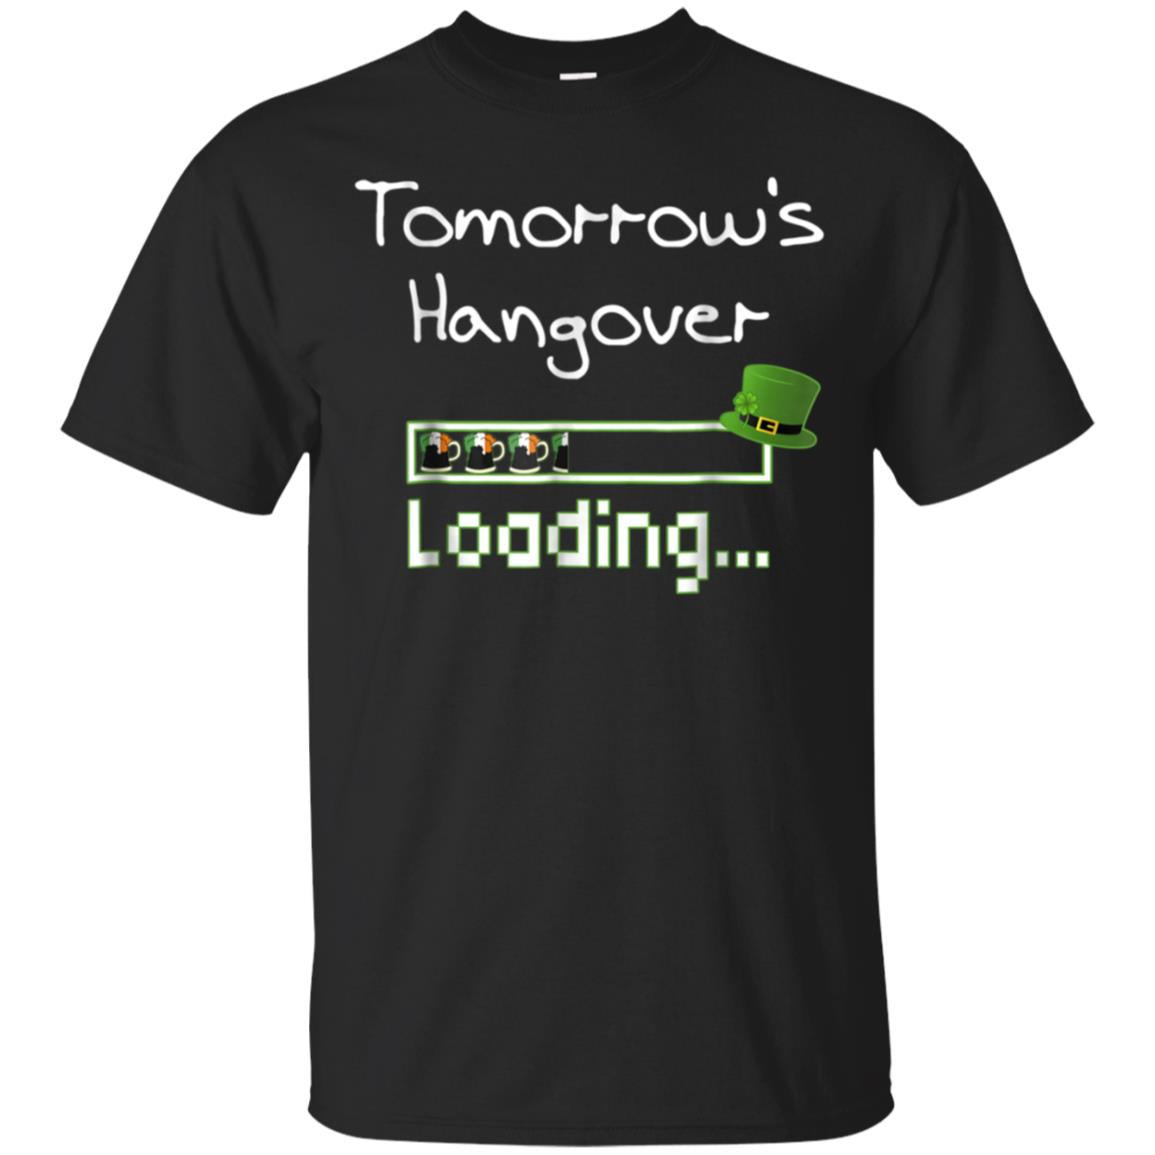 St Patricks Day drinking beer shirt for womens men Hangover 99promocode